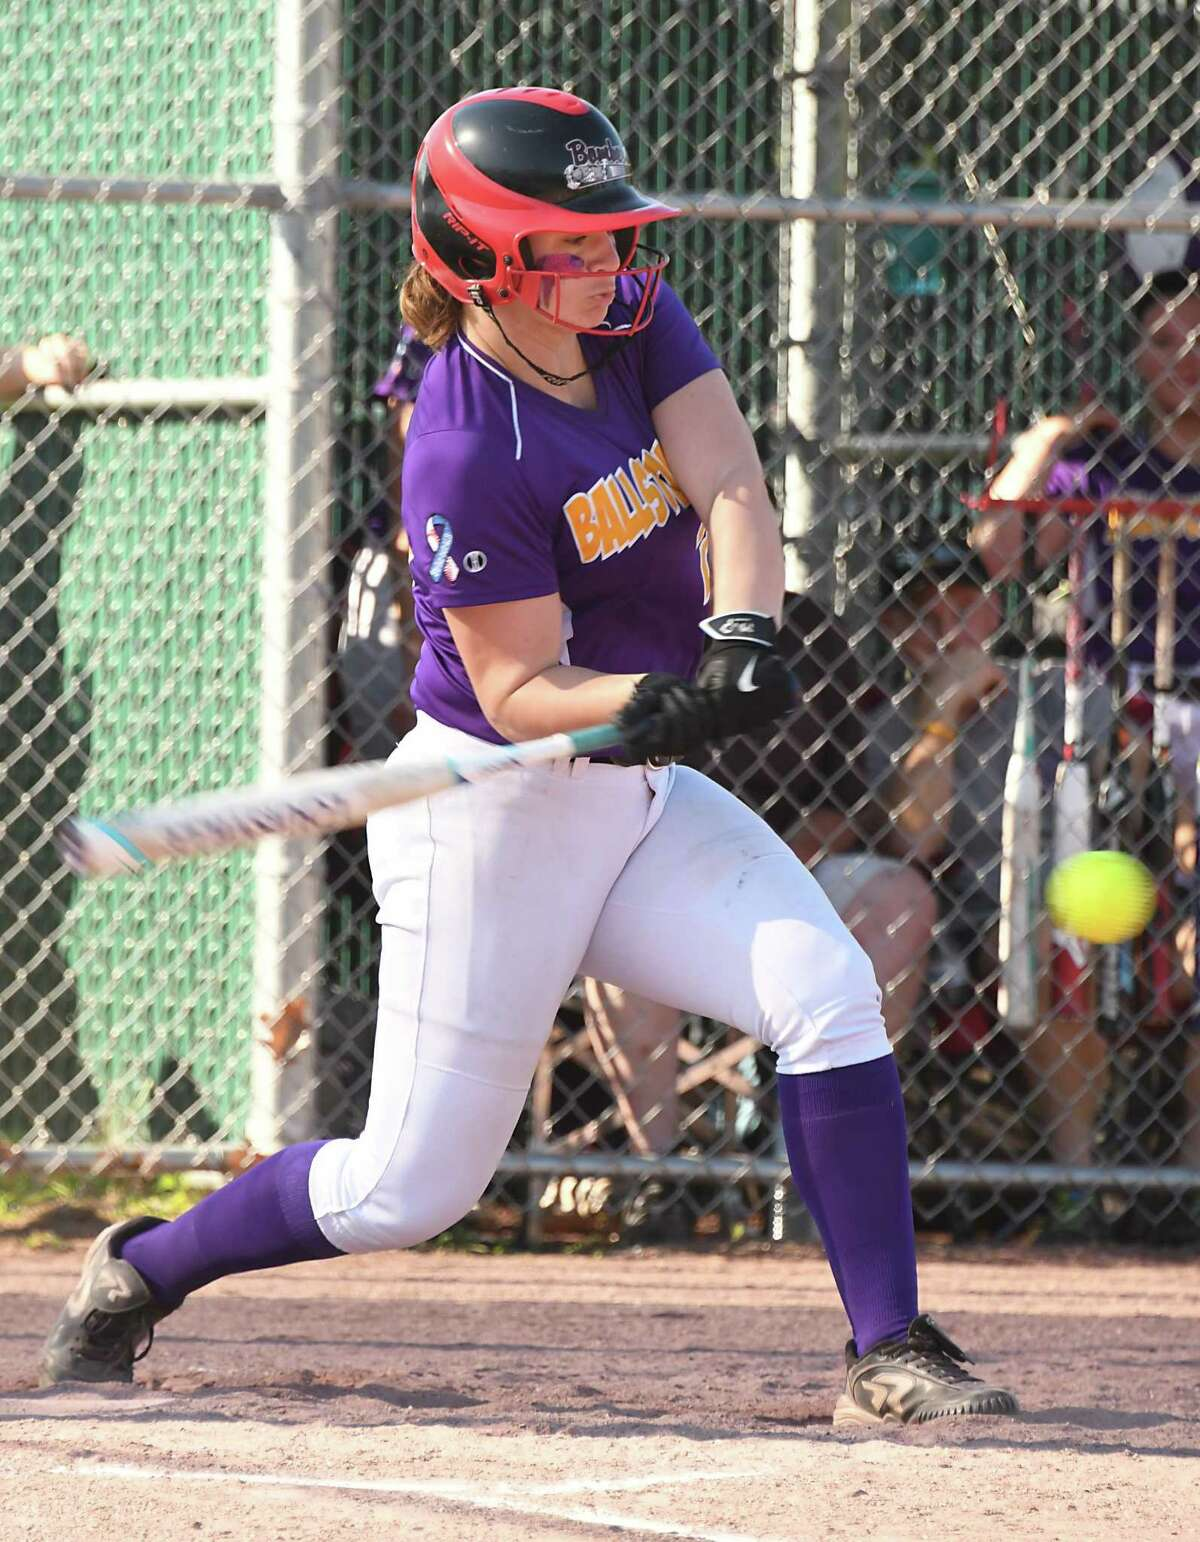 Ballston Spa pitcher Sarah Pritchard swings for the ball during the Class AA softball final against Columbia at the Luther Forest Complex on Wednesday, May 29, 2018 in Malta N.Y. (Lori Van Buren/Times Union)